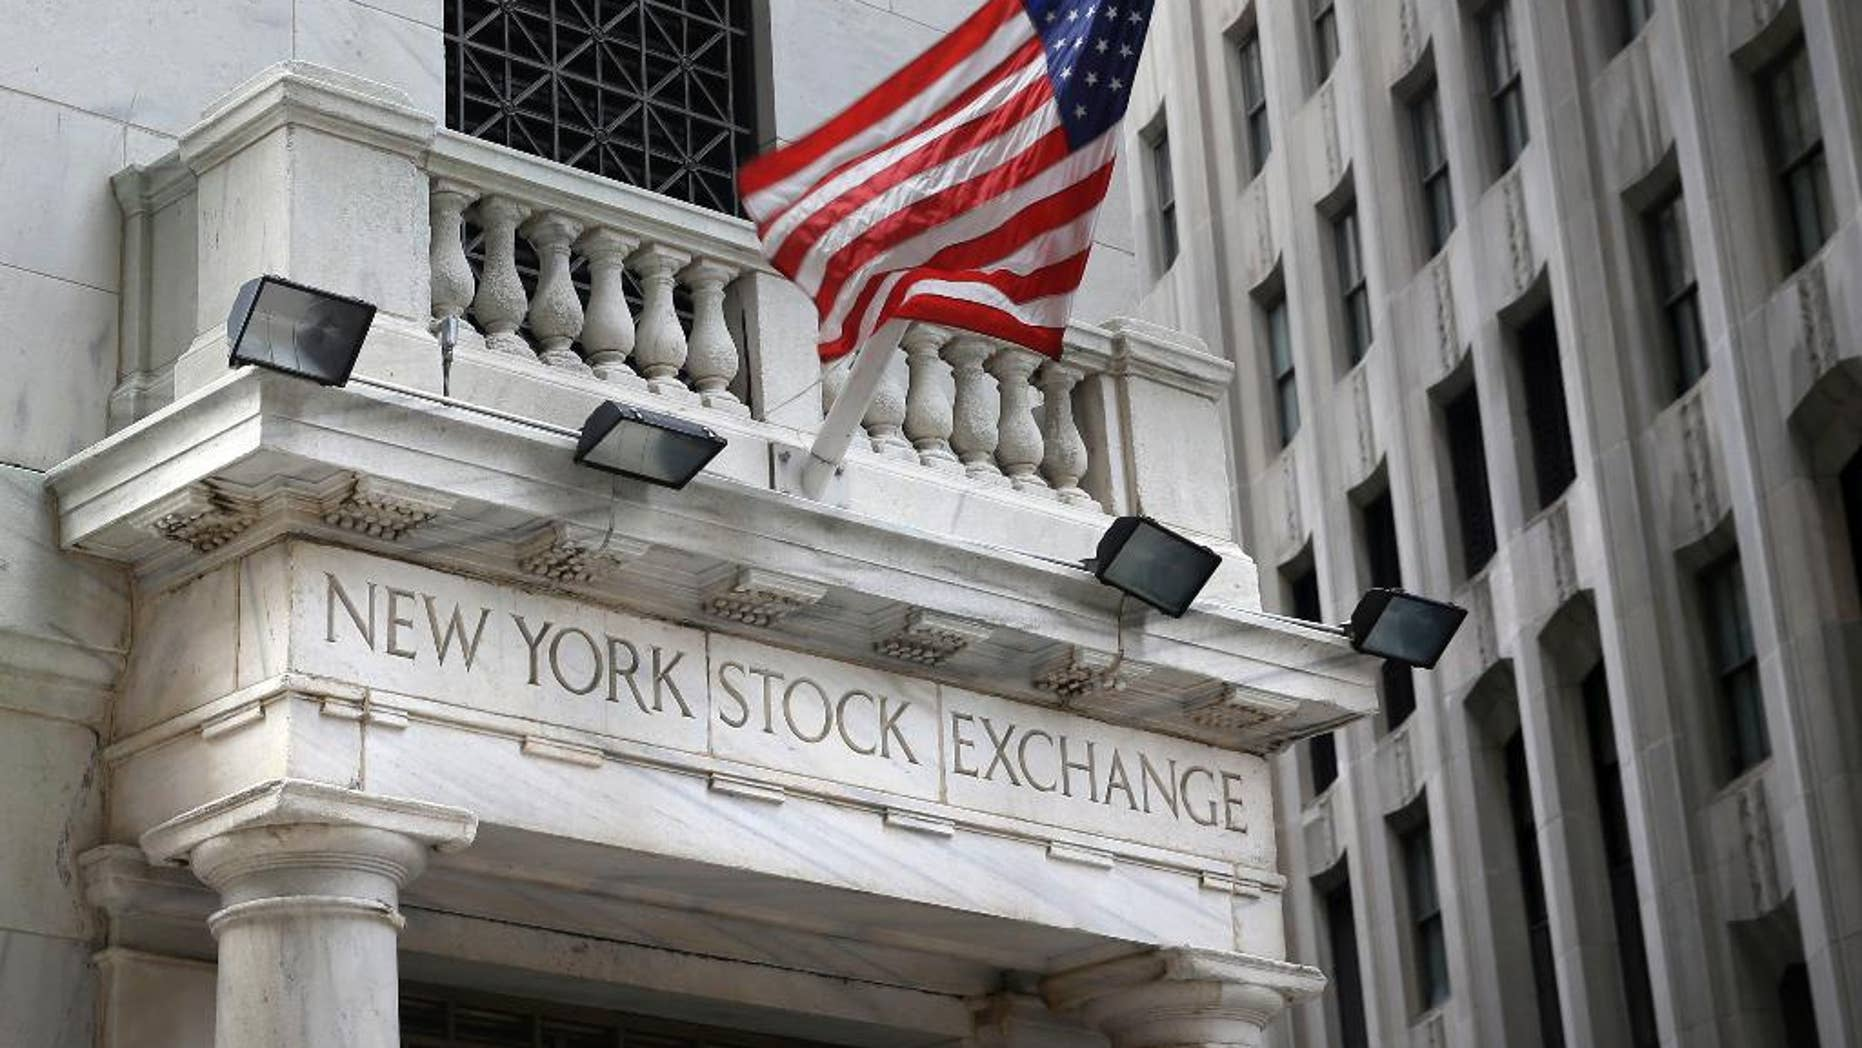 FILE - This Monday, Aug. 24, 2015, file photo, shows the New York Stock Exchange. U.S stocks fell in early trading Tuesday, Dec. 8, 2015, following a sell-off in Asia and Europe as the price of oil continued to slide to seven-year lows. The losses were broad, with all 10 industry sectors of the Standard and Poor's 500 index down. (AP Photo/Seth Wenig, File)